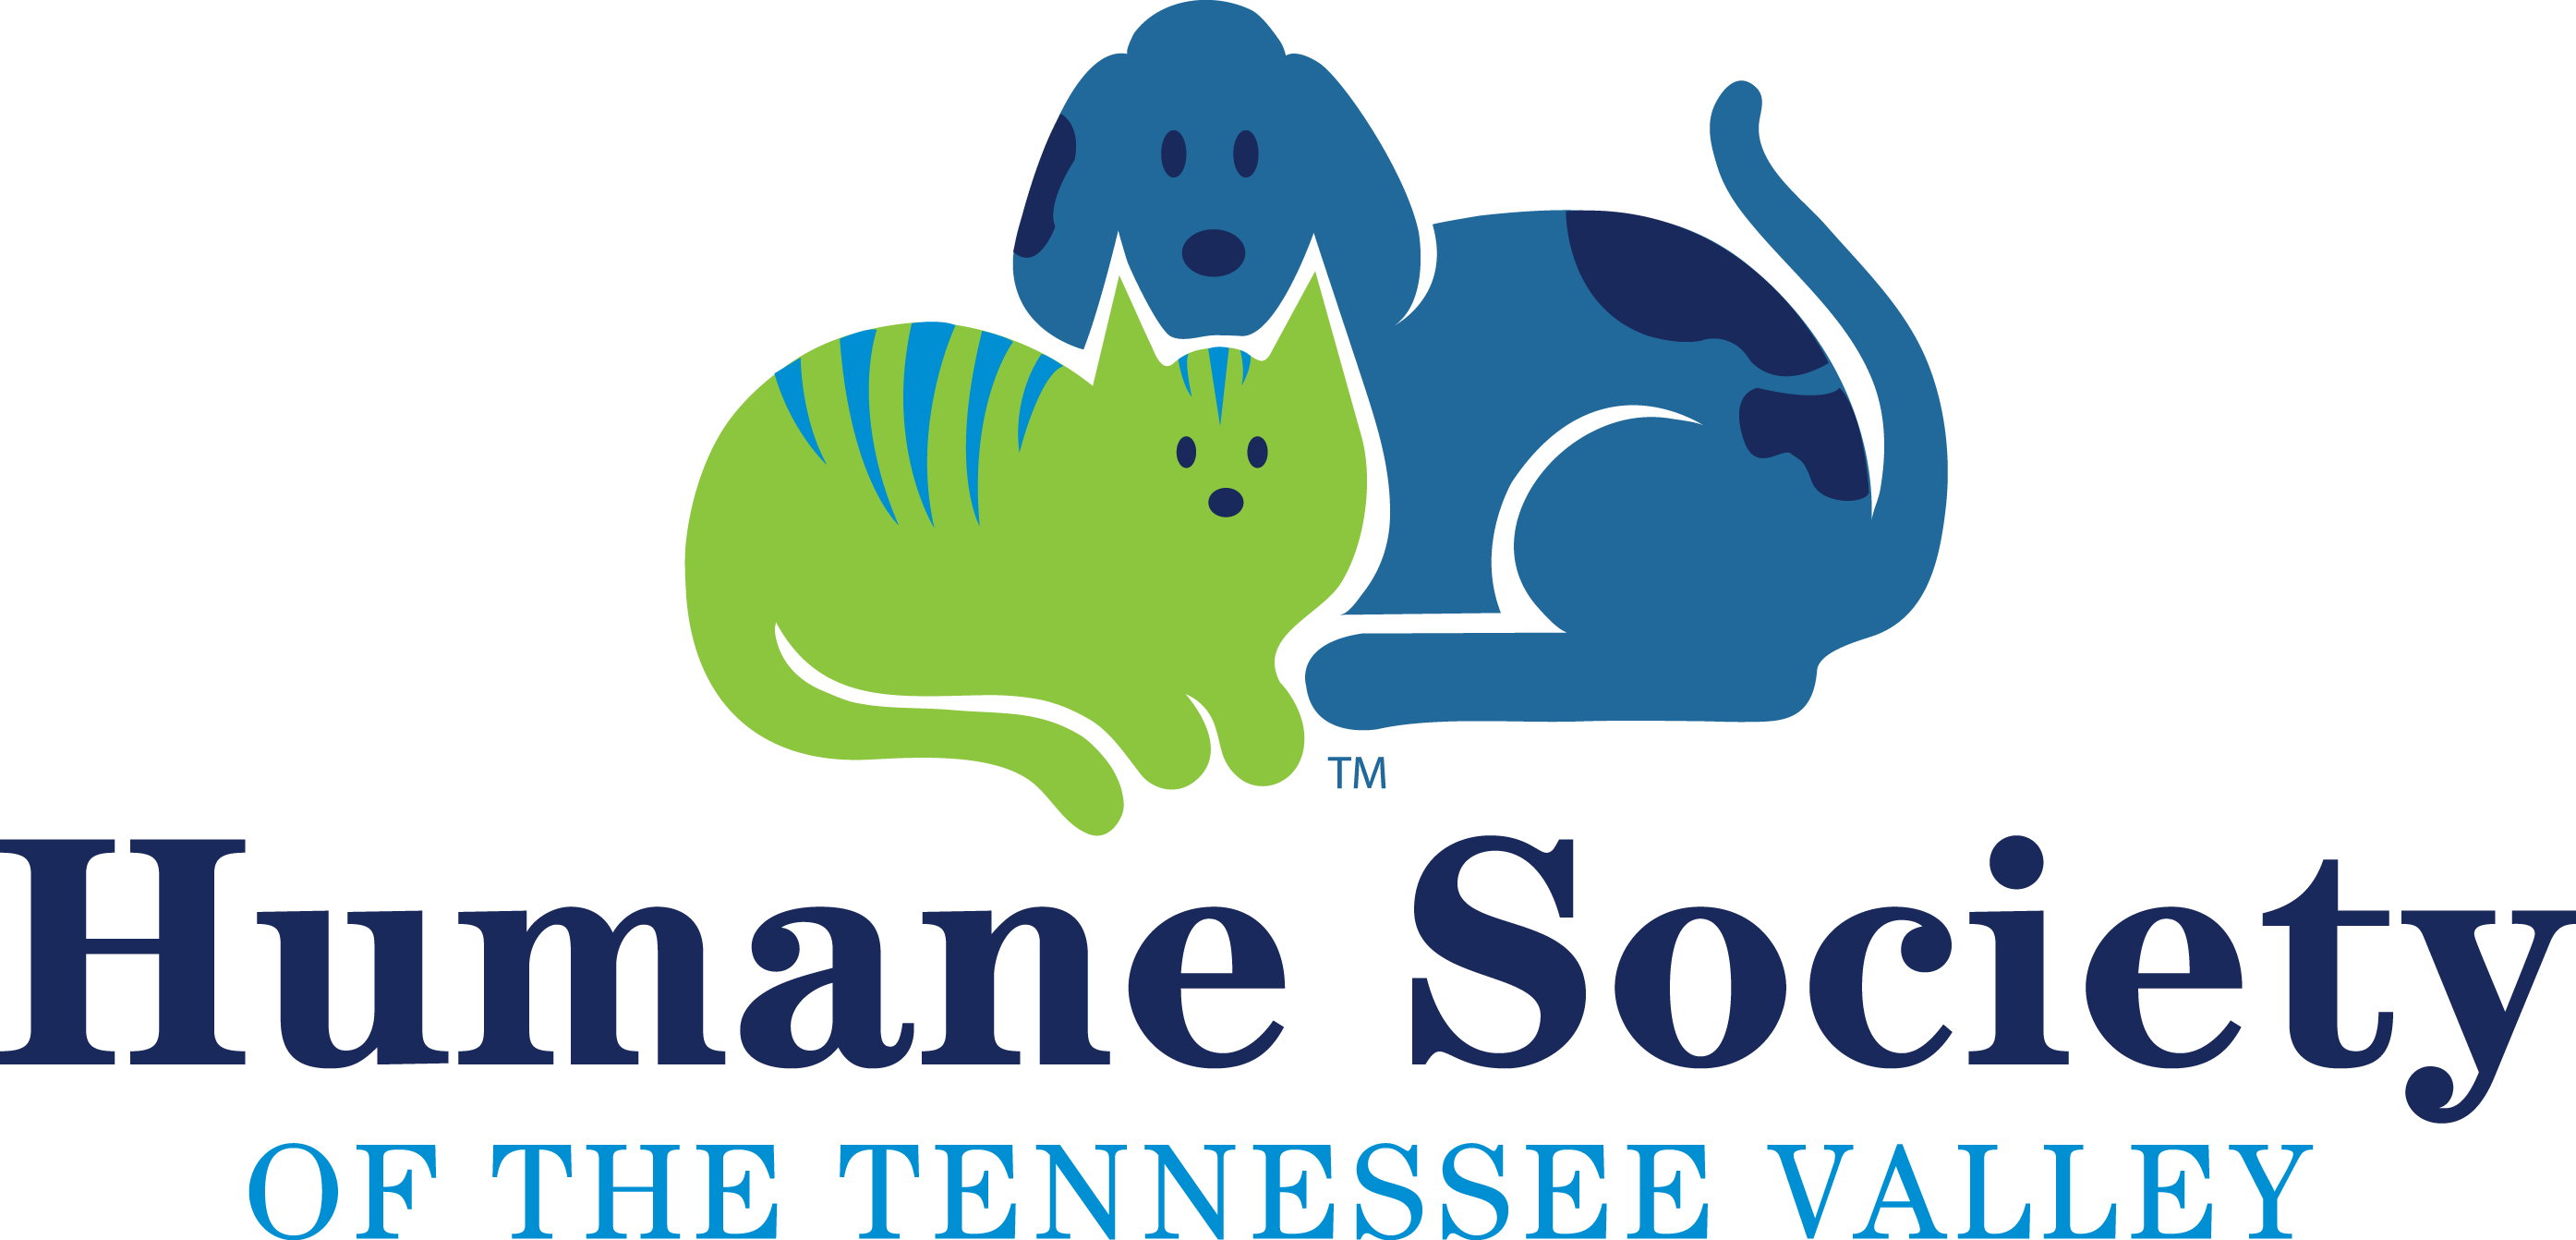 The Humane Society of the Tennessee Valley